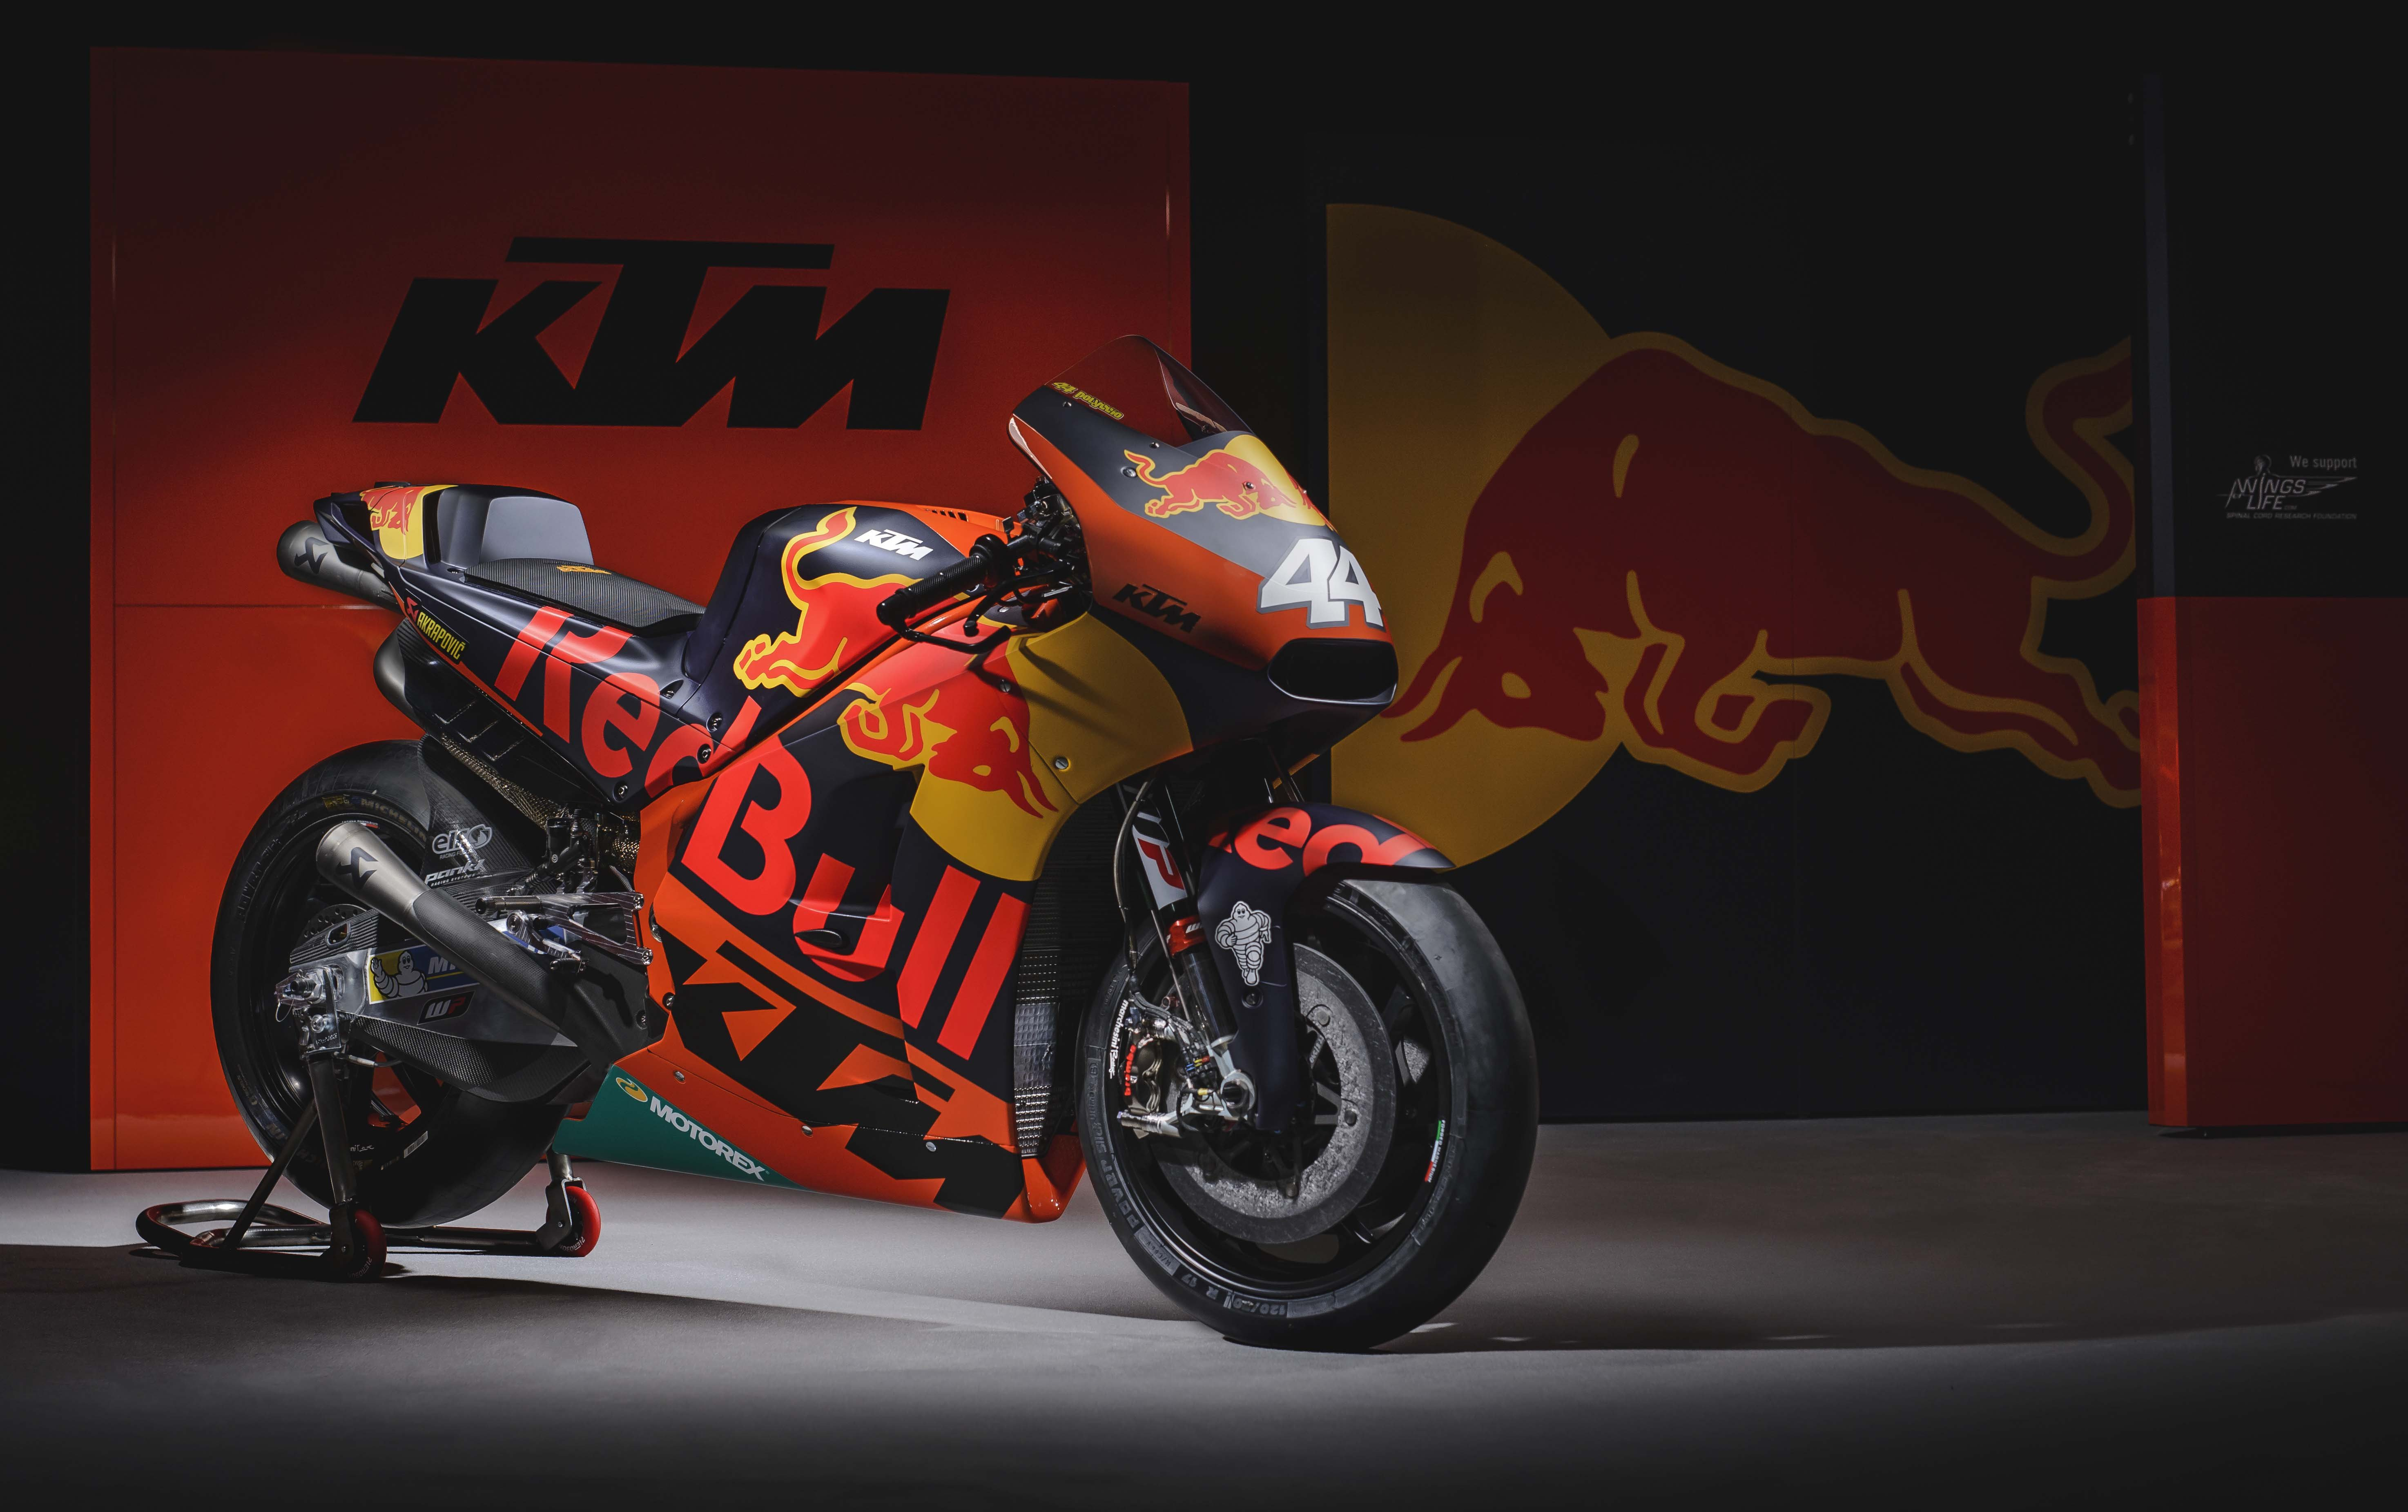 Ktm Logo Hd Wallpaper New 2018 Ktm Logo Images Photos Download2018